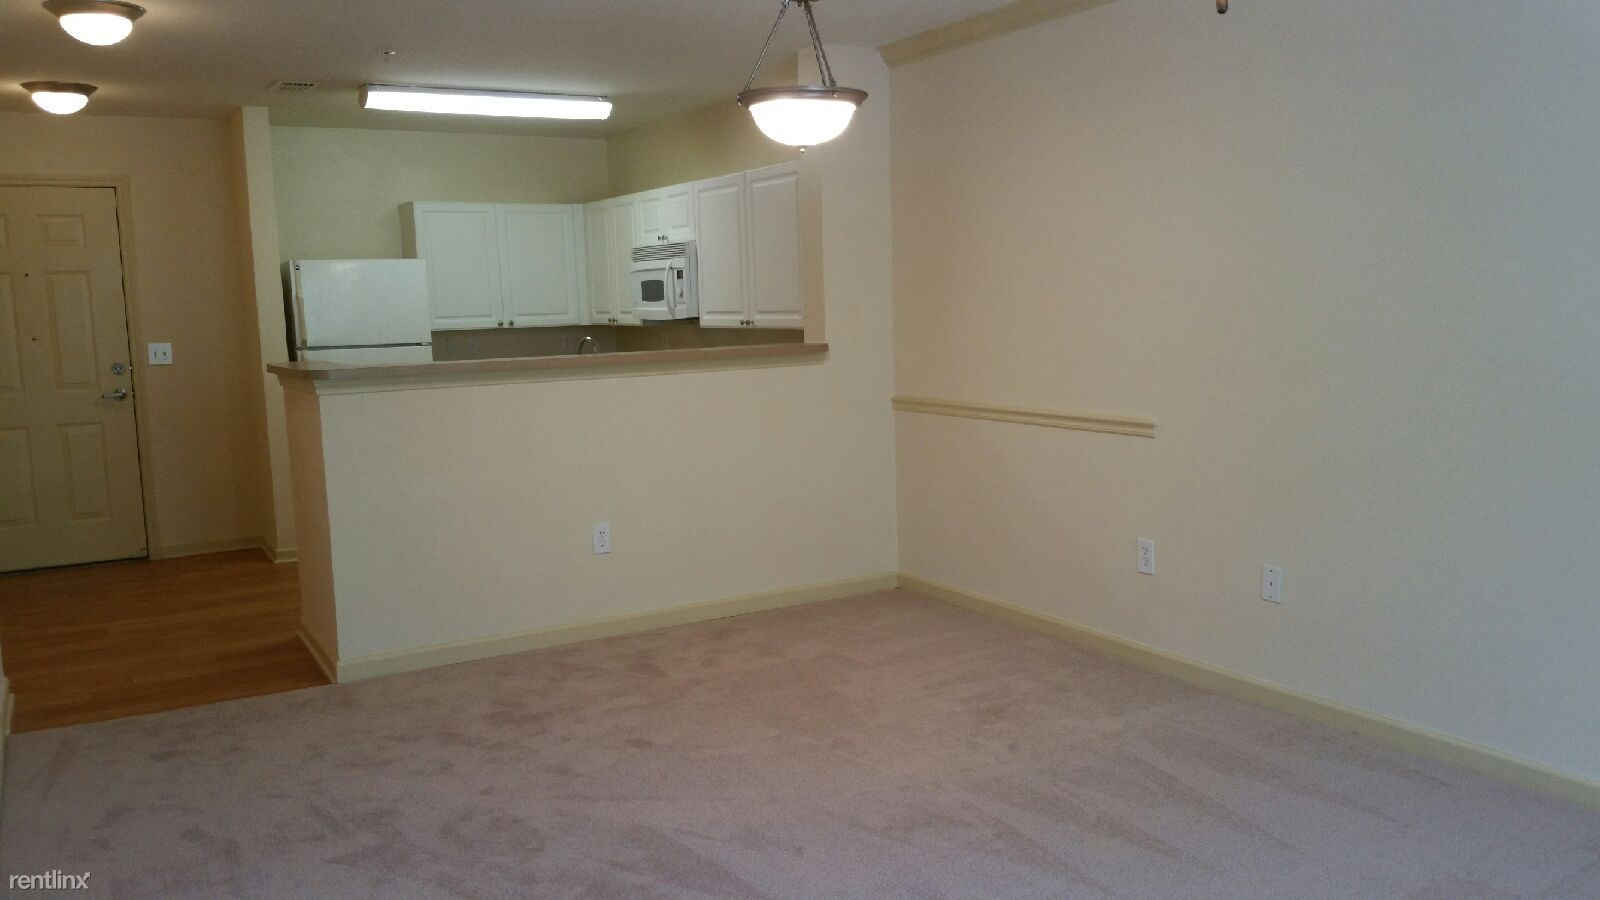 2 BEDROOM KITCHEN AND DINING SPACE